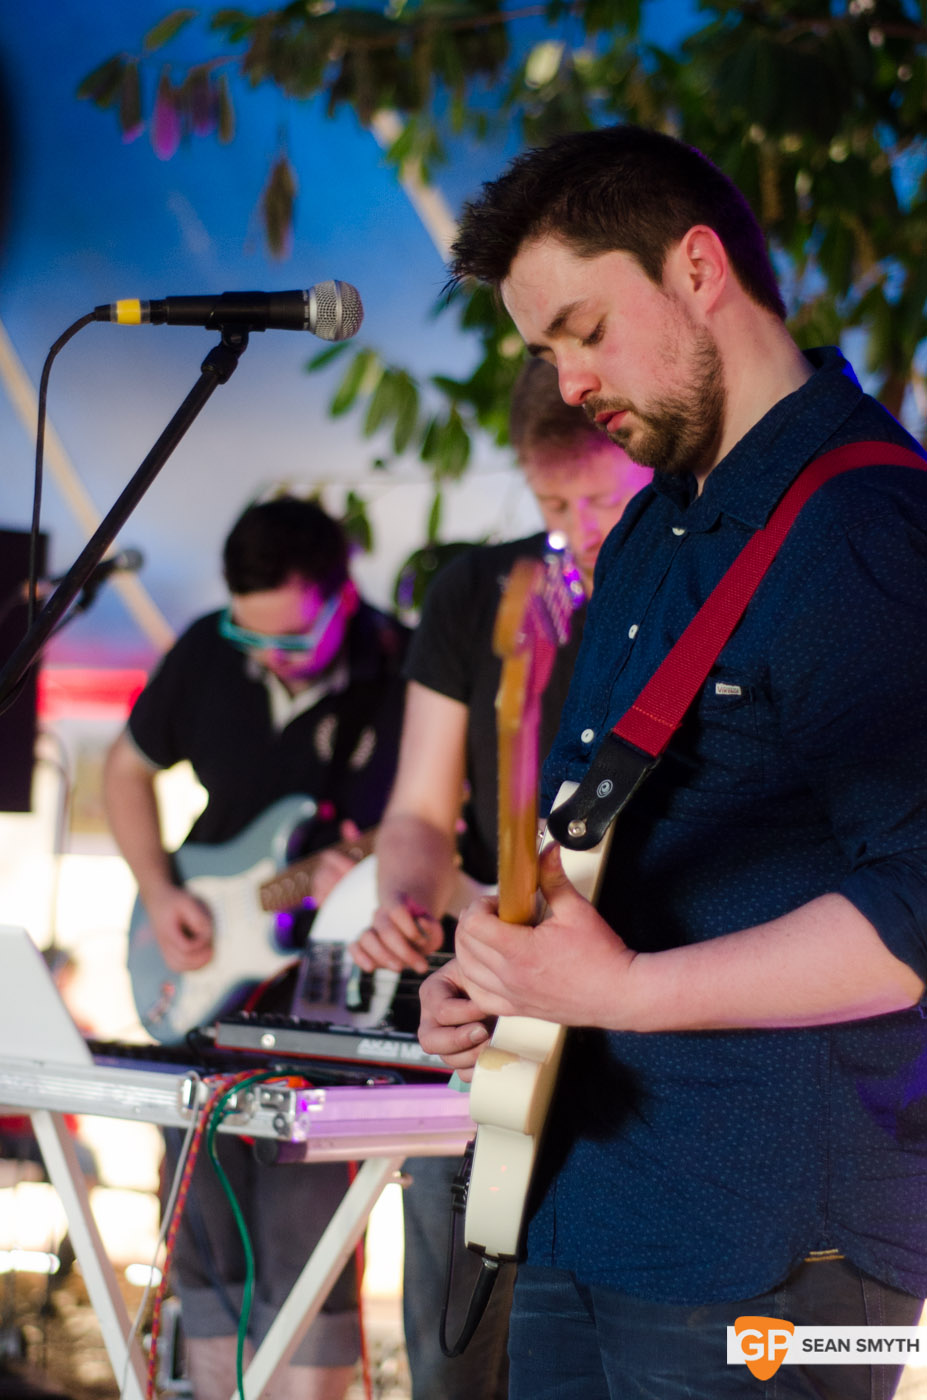 almost-ghosts-sunday-at-vantastival-by-sean-smyth-1-5-14-3-of-49